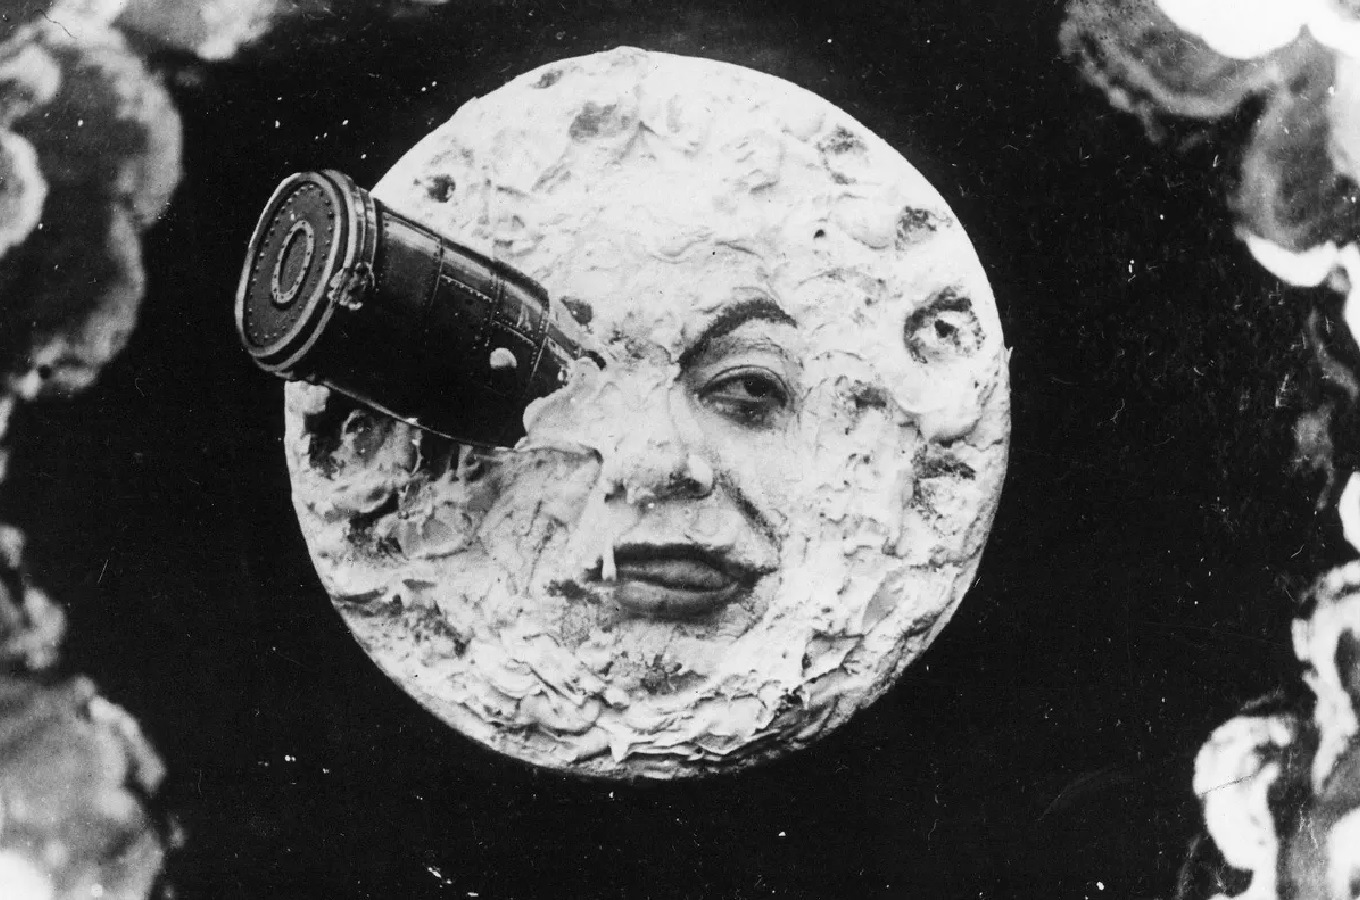 The rocket impaled in the Man in the Moon's eye in A Trip to the Moon (1902)